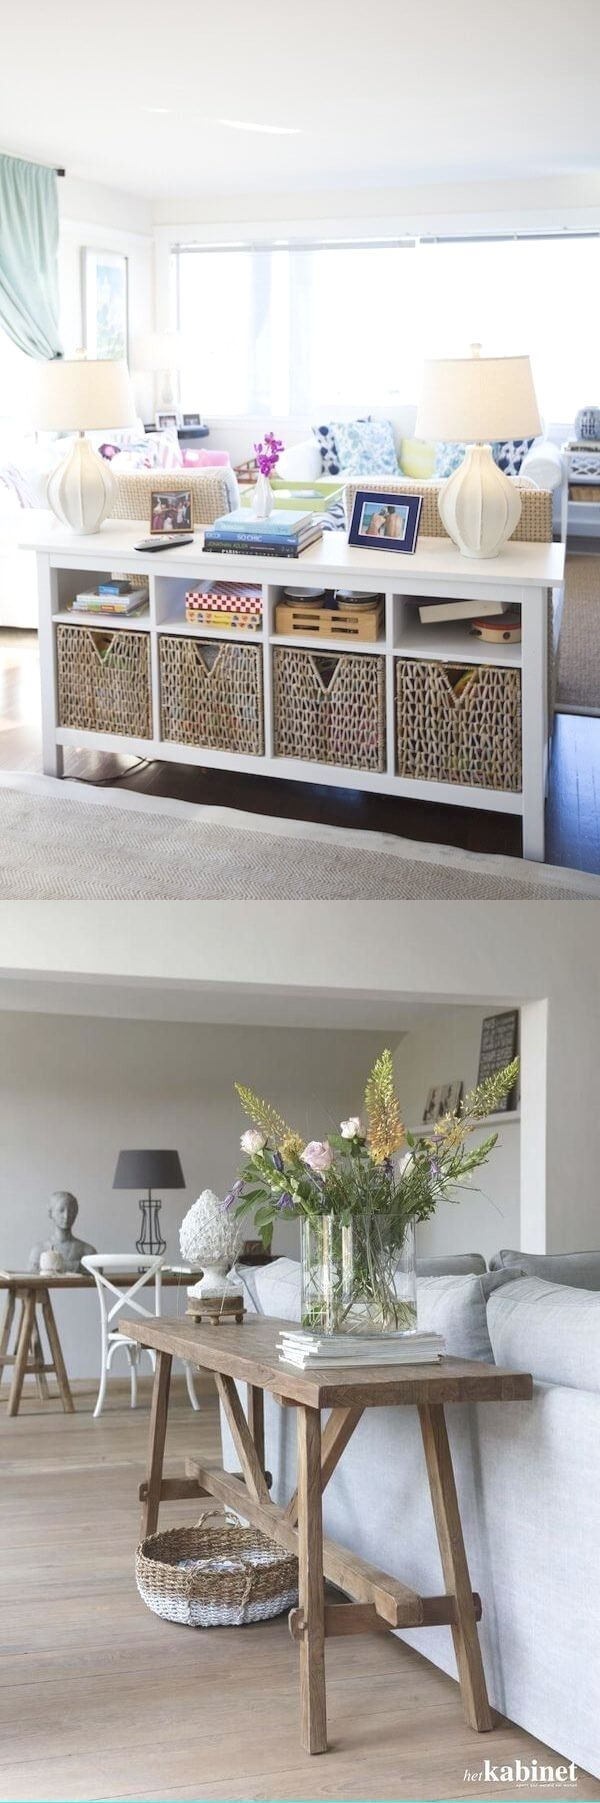 Cool Console Table Behind Couch Decor. Window Recortadas24